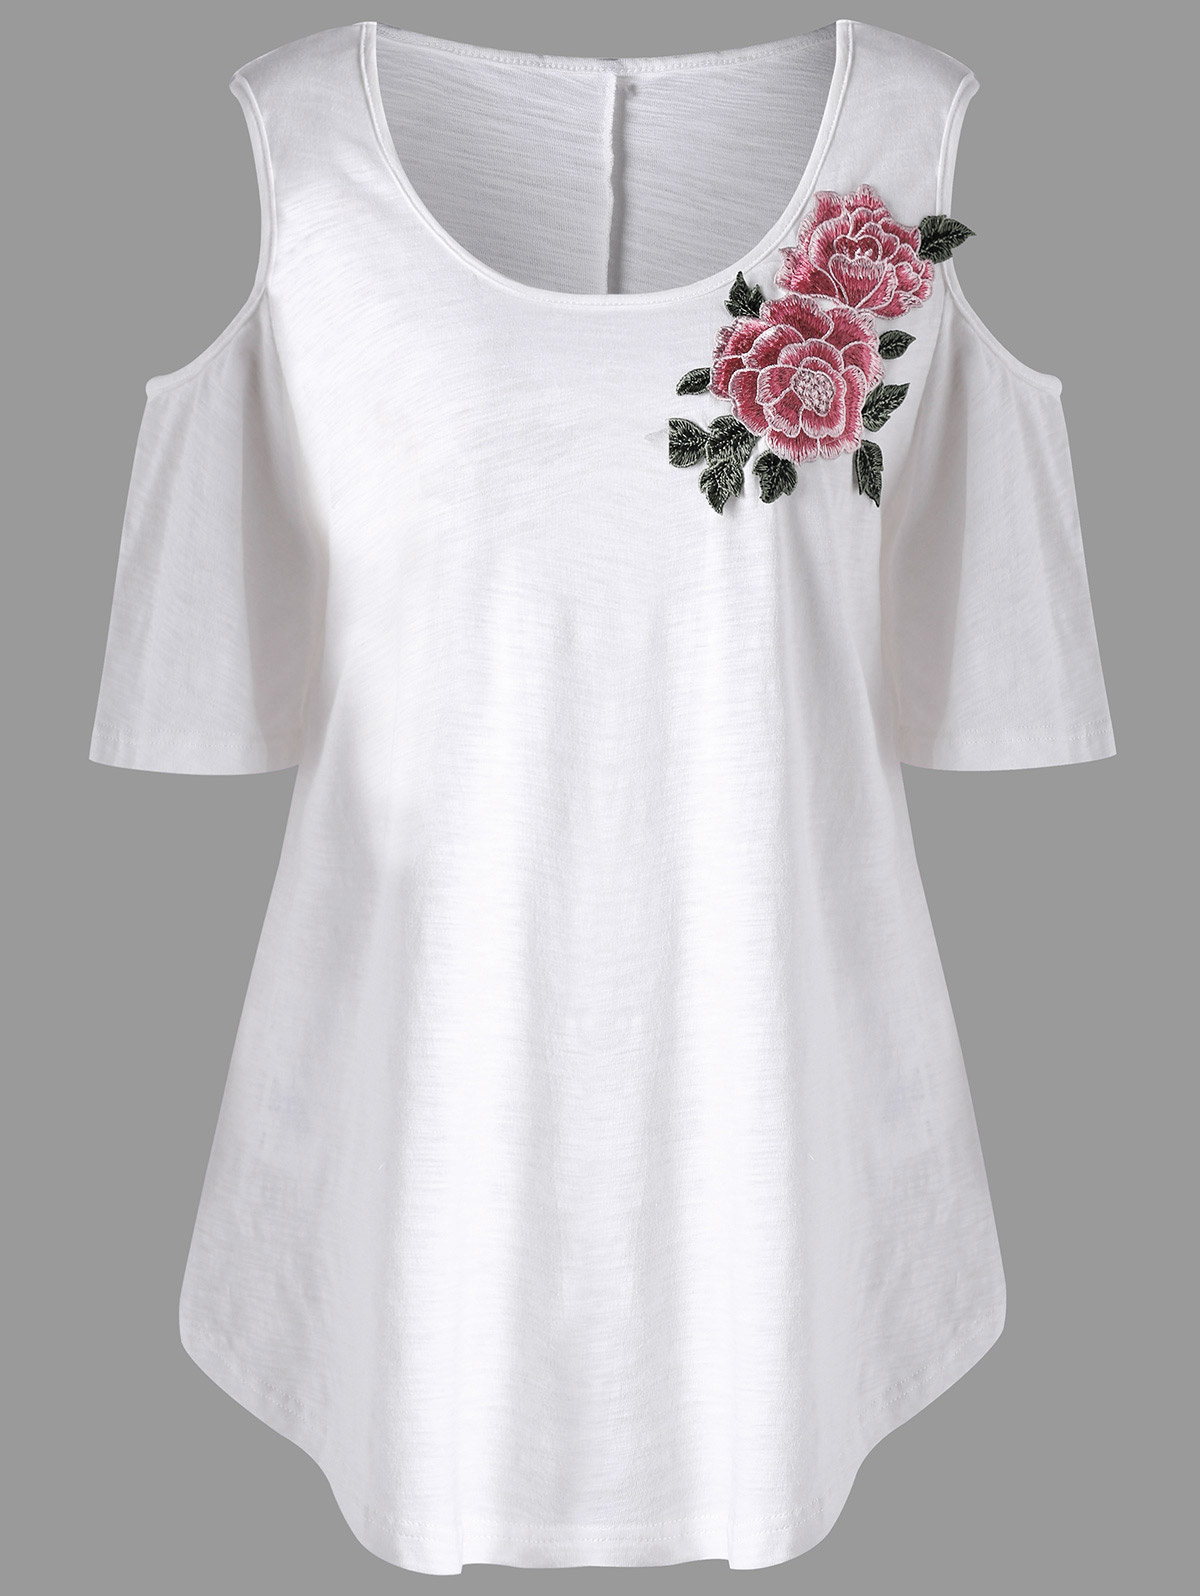 113a786cf Shirt Length: Long Sleeve Length: Short Collar: Scoop Neck Style: Casual  Season: Summer Embellishment: Appliques,Embroidery Pattern Type: Floral